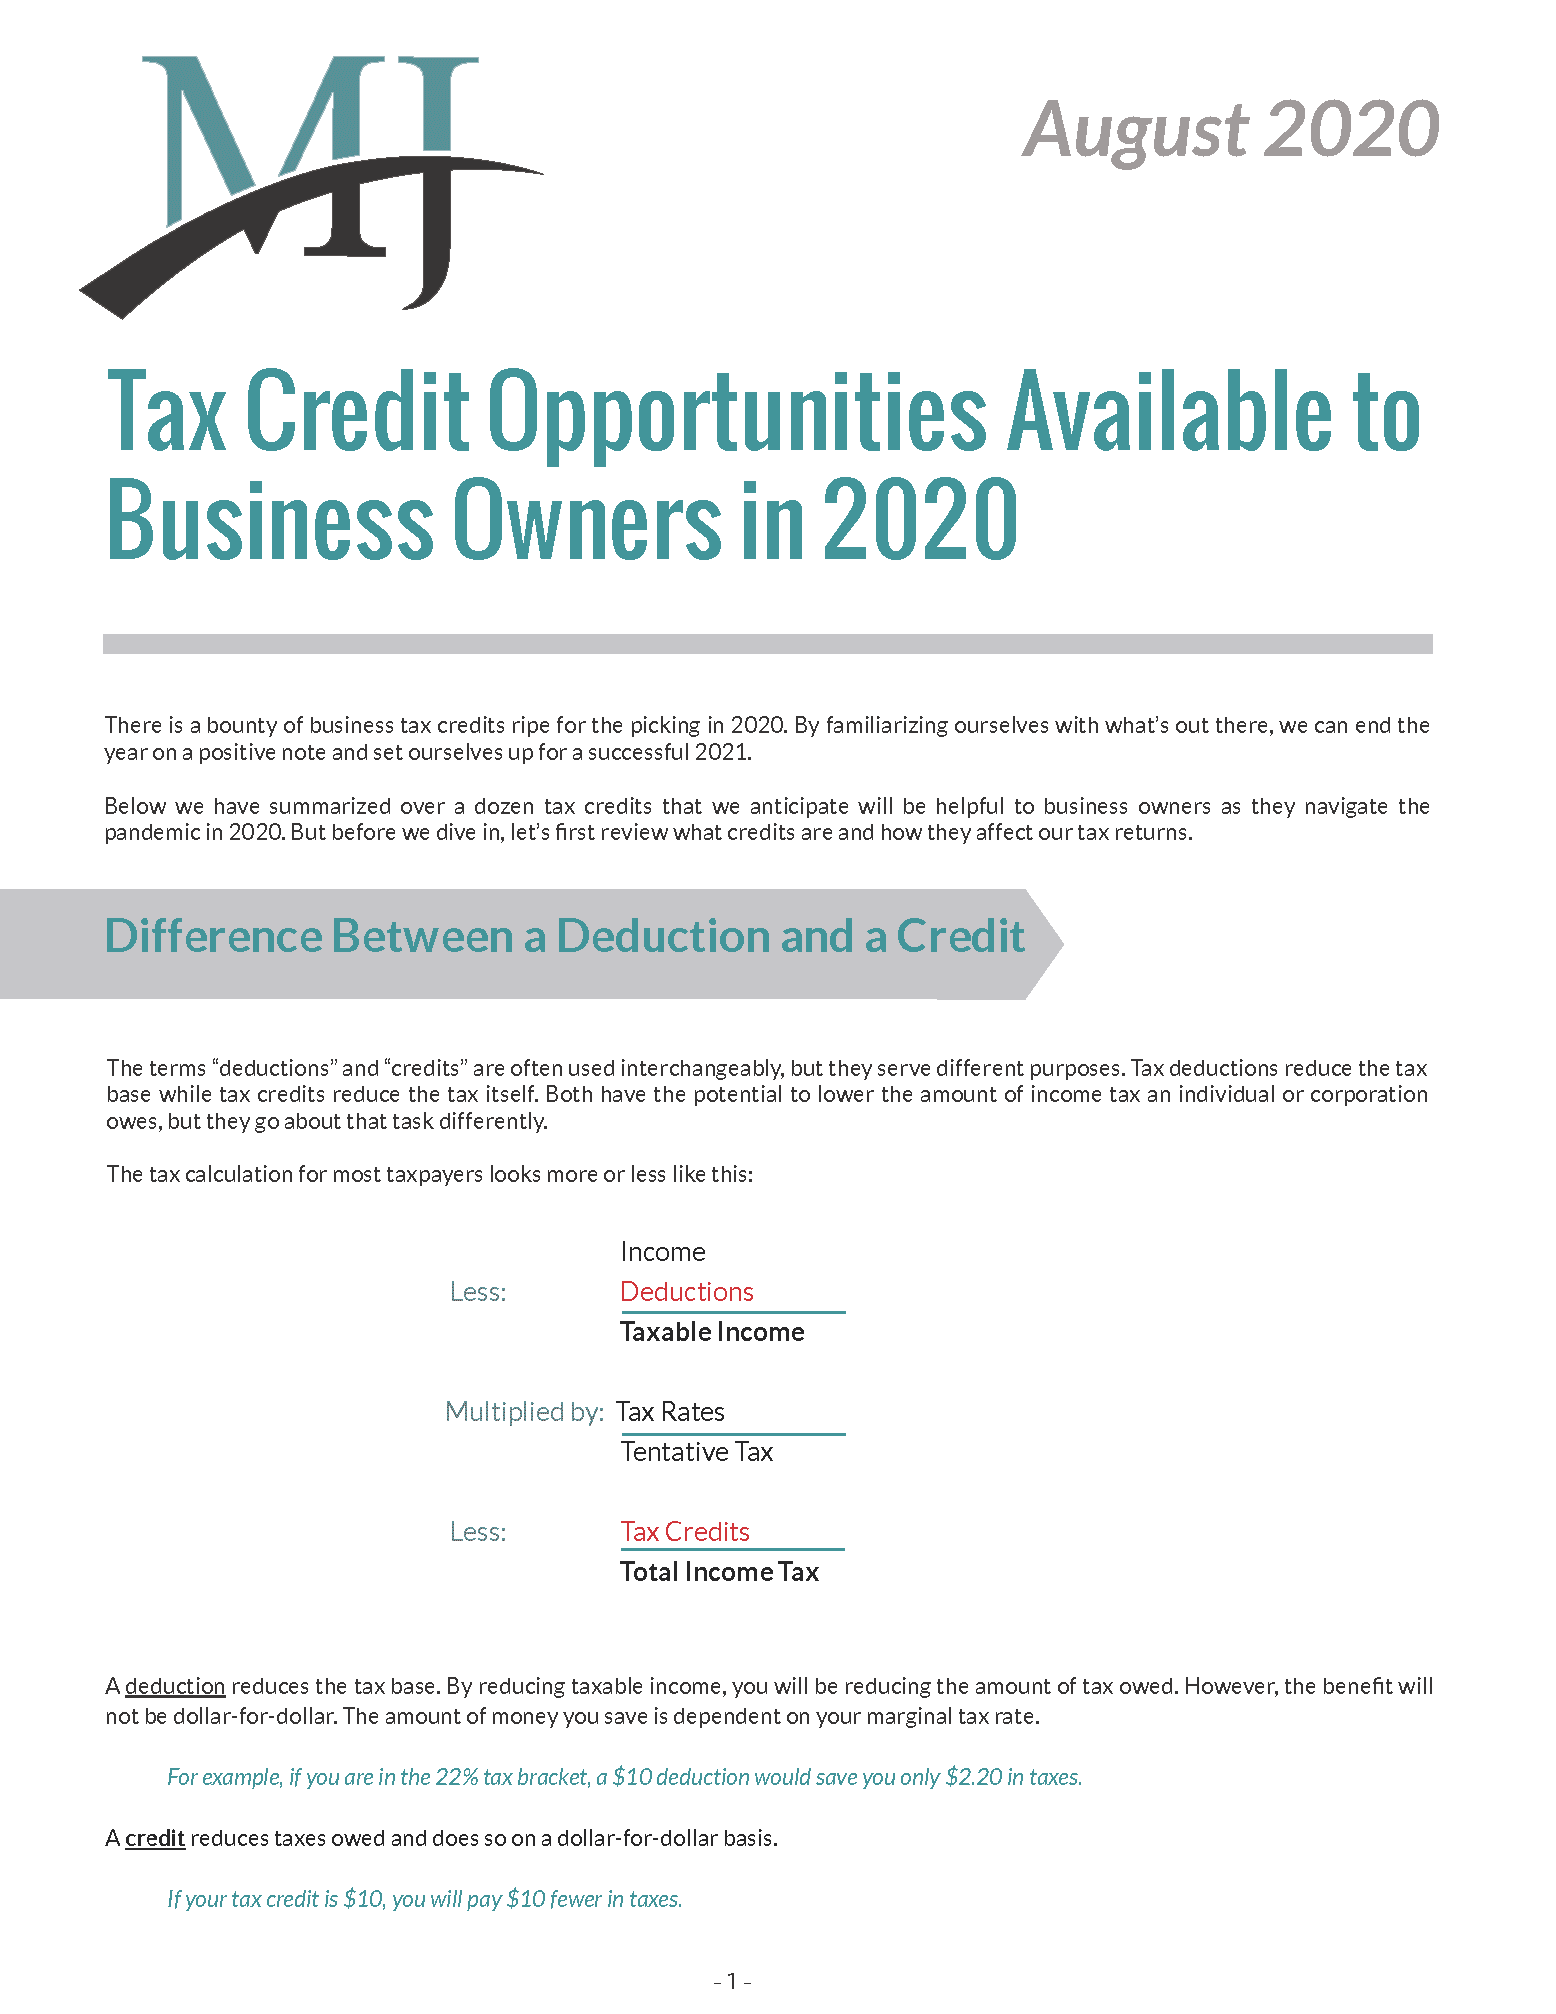 M&J Tax Credits Whitepaper 8.18.20_Page_1